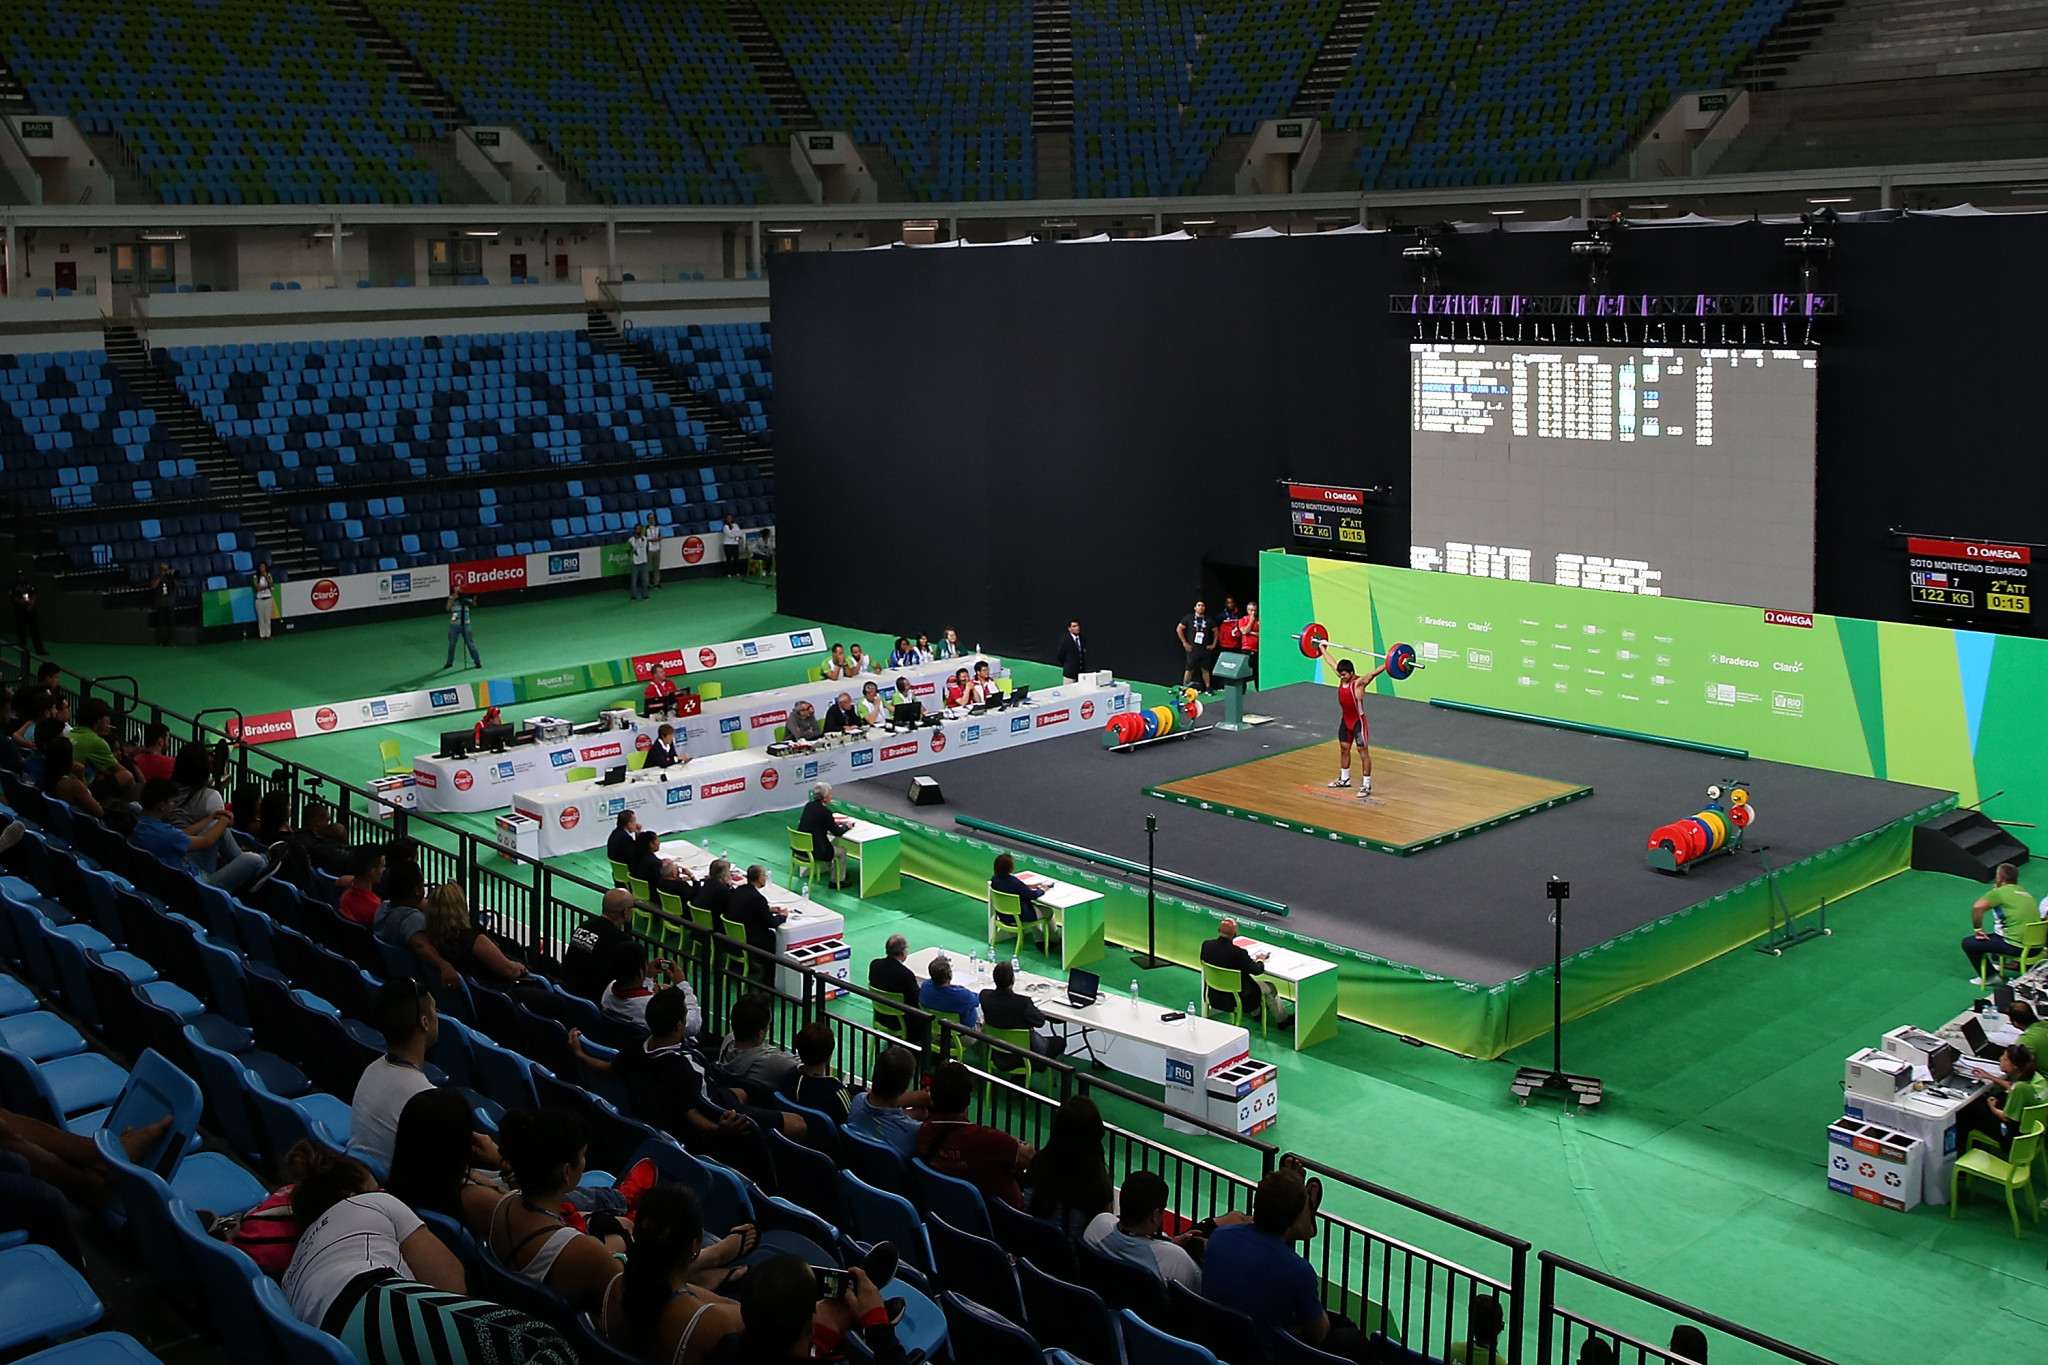 An extraordinary meeting of the IWF Executive Board has been called in Doha next week amid troubling times ©Getty Images